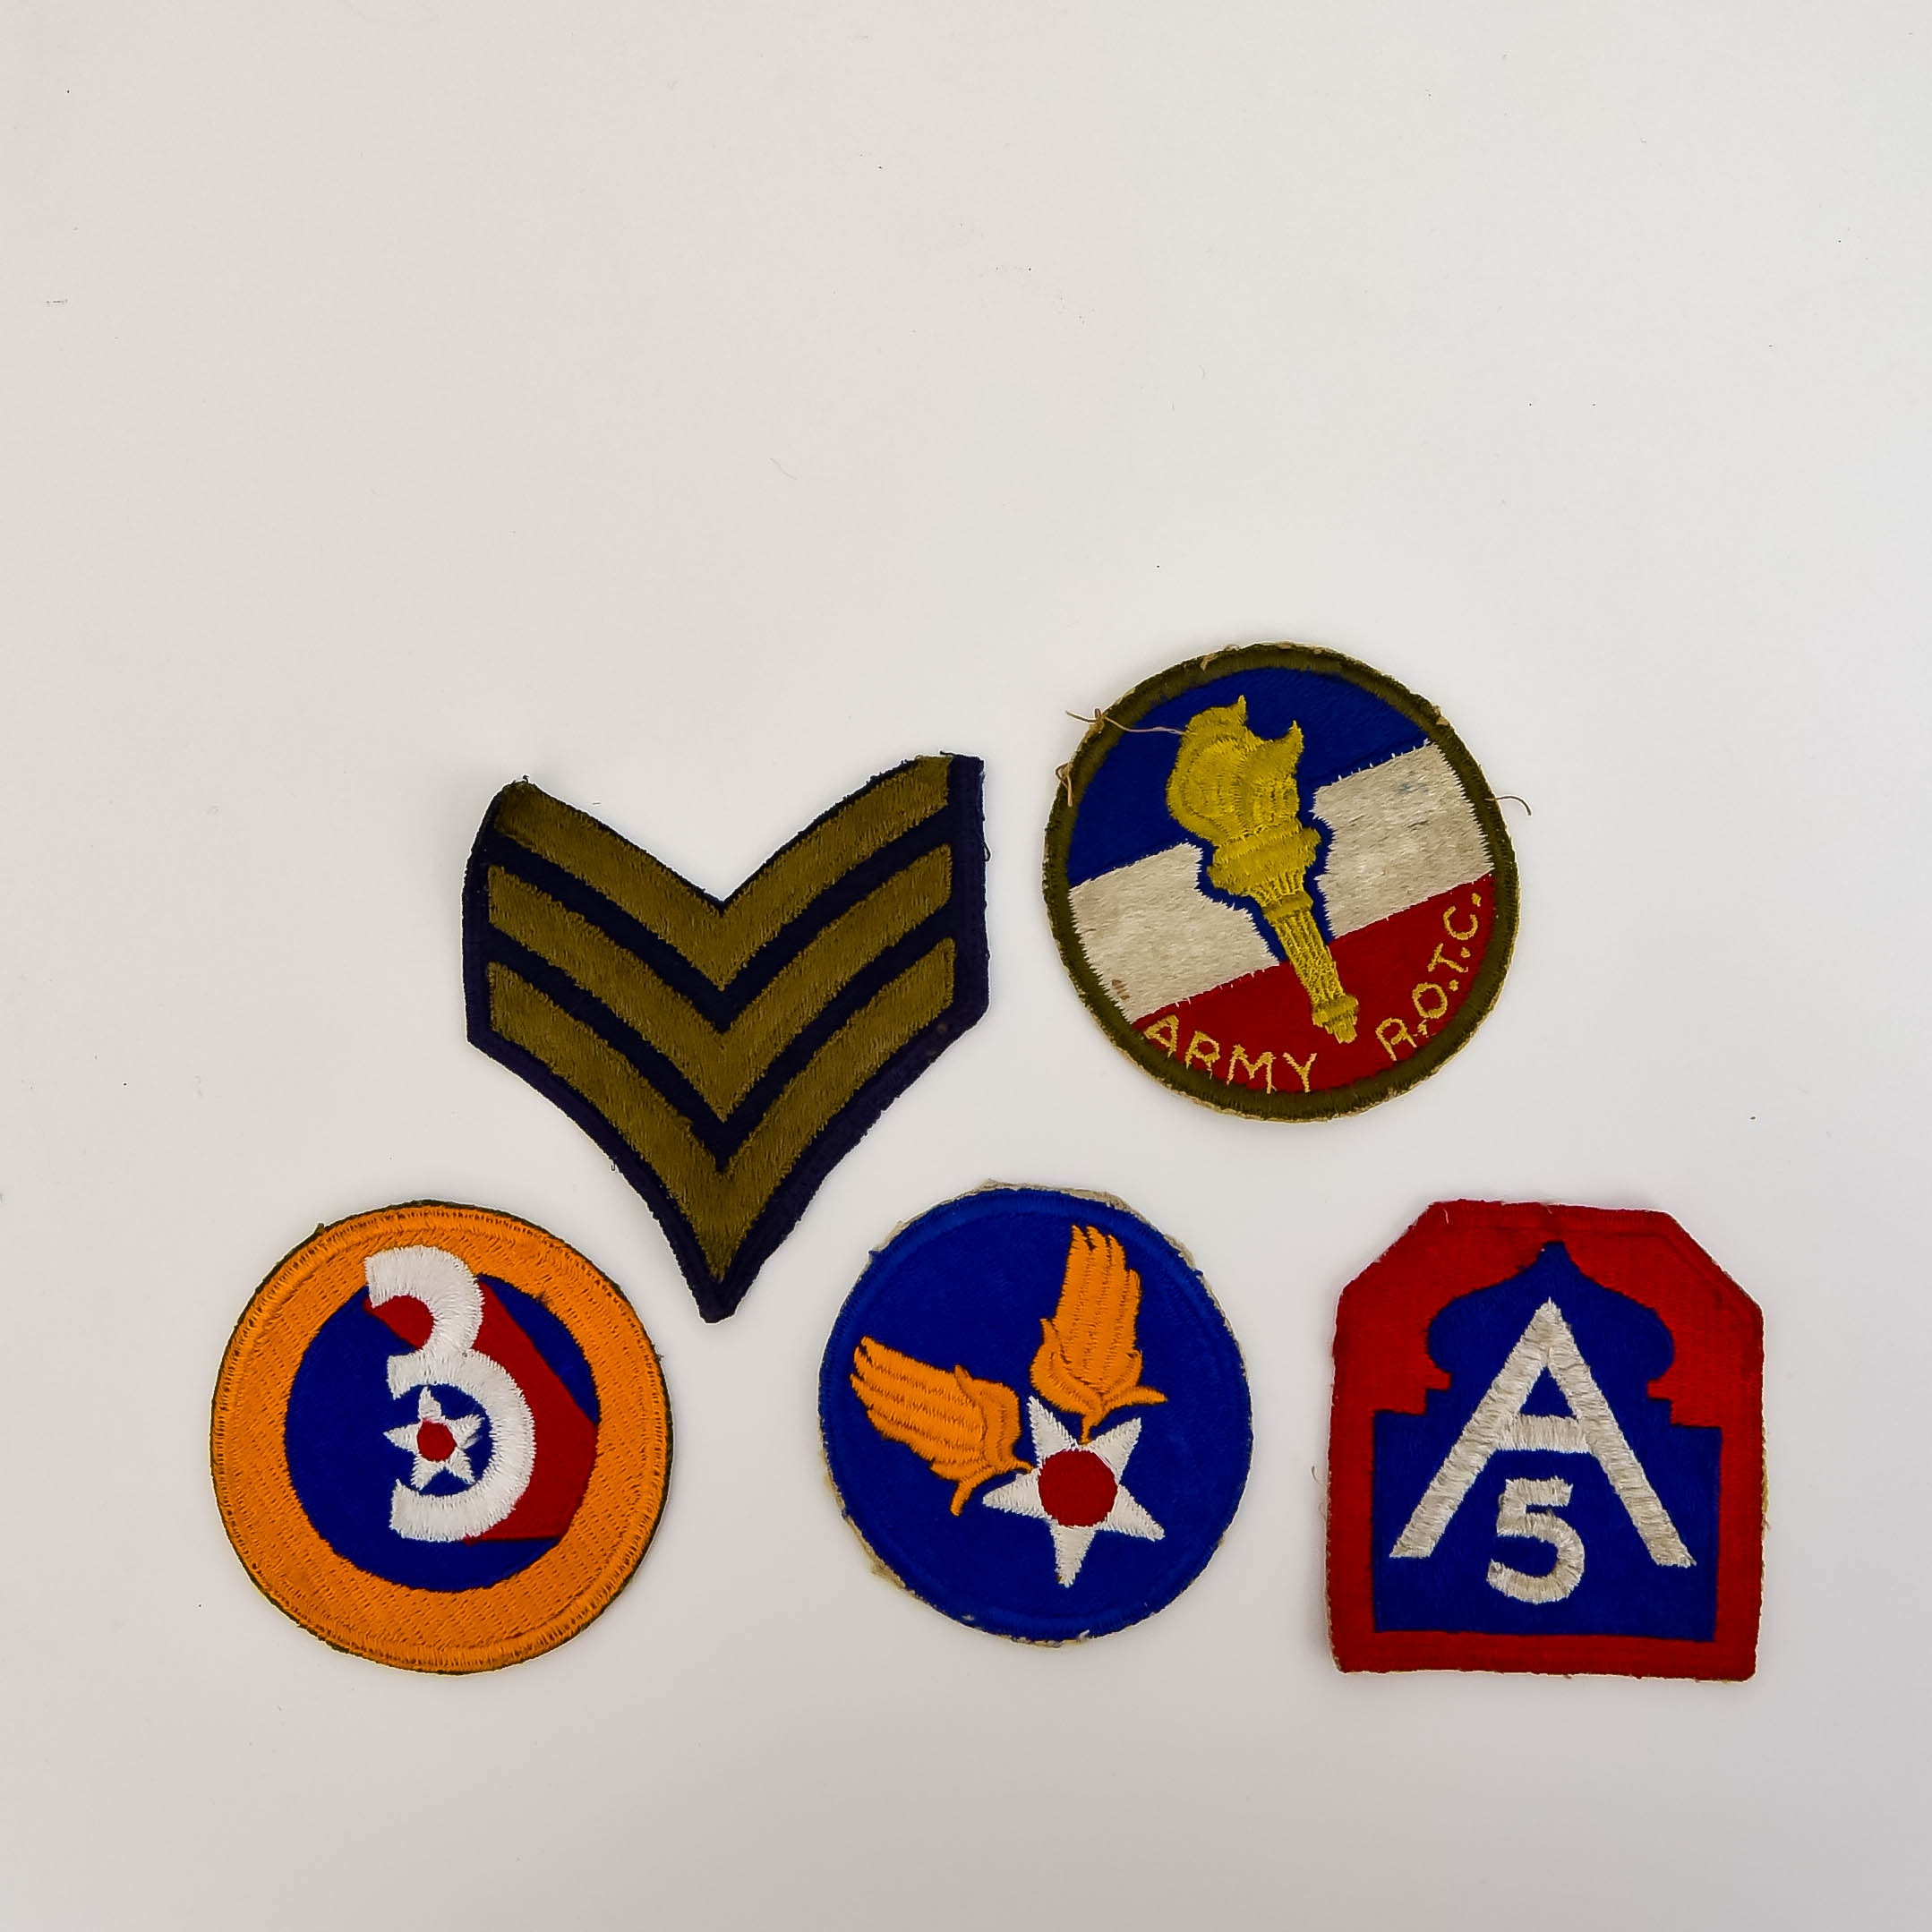 Collection of World War II Military Uniform Patches